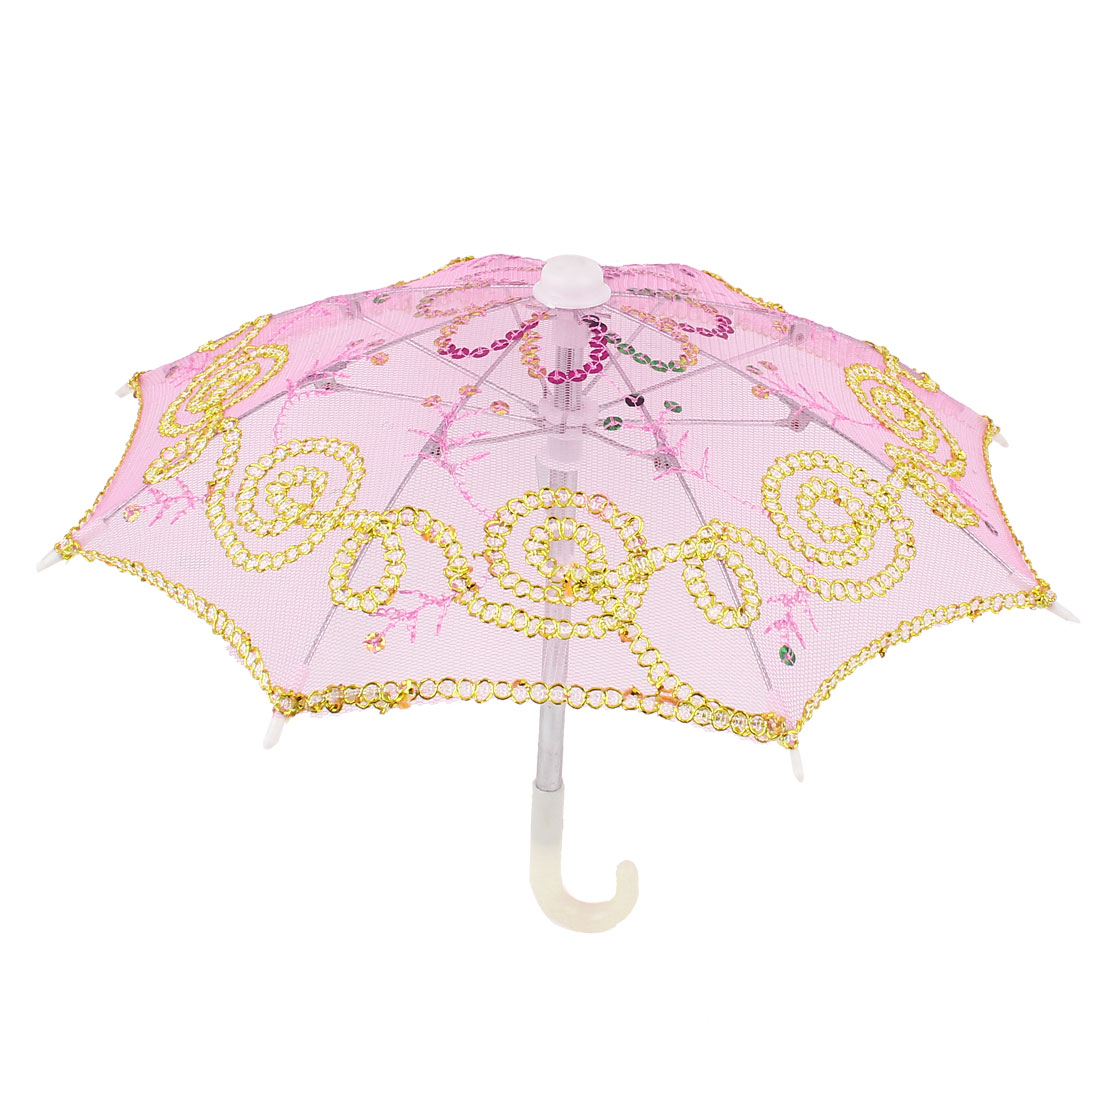 Handmade Wedding Party Sequin Ornament Lace Mini Parasol Umbrella Pink